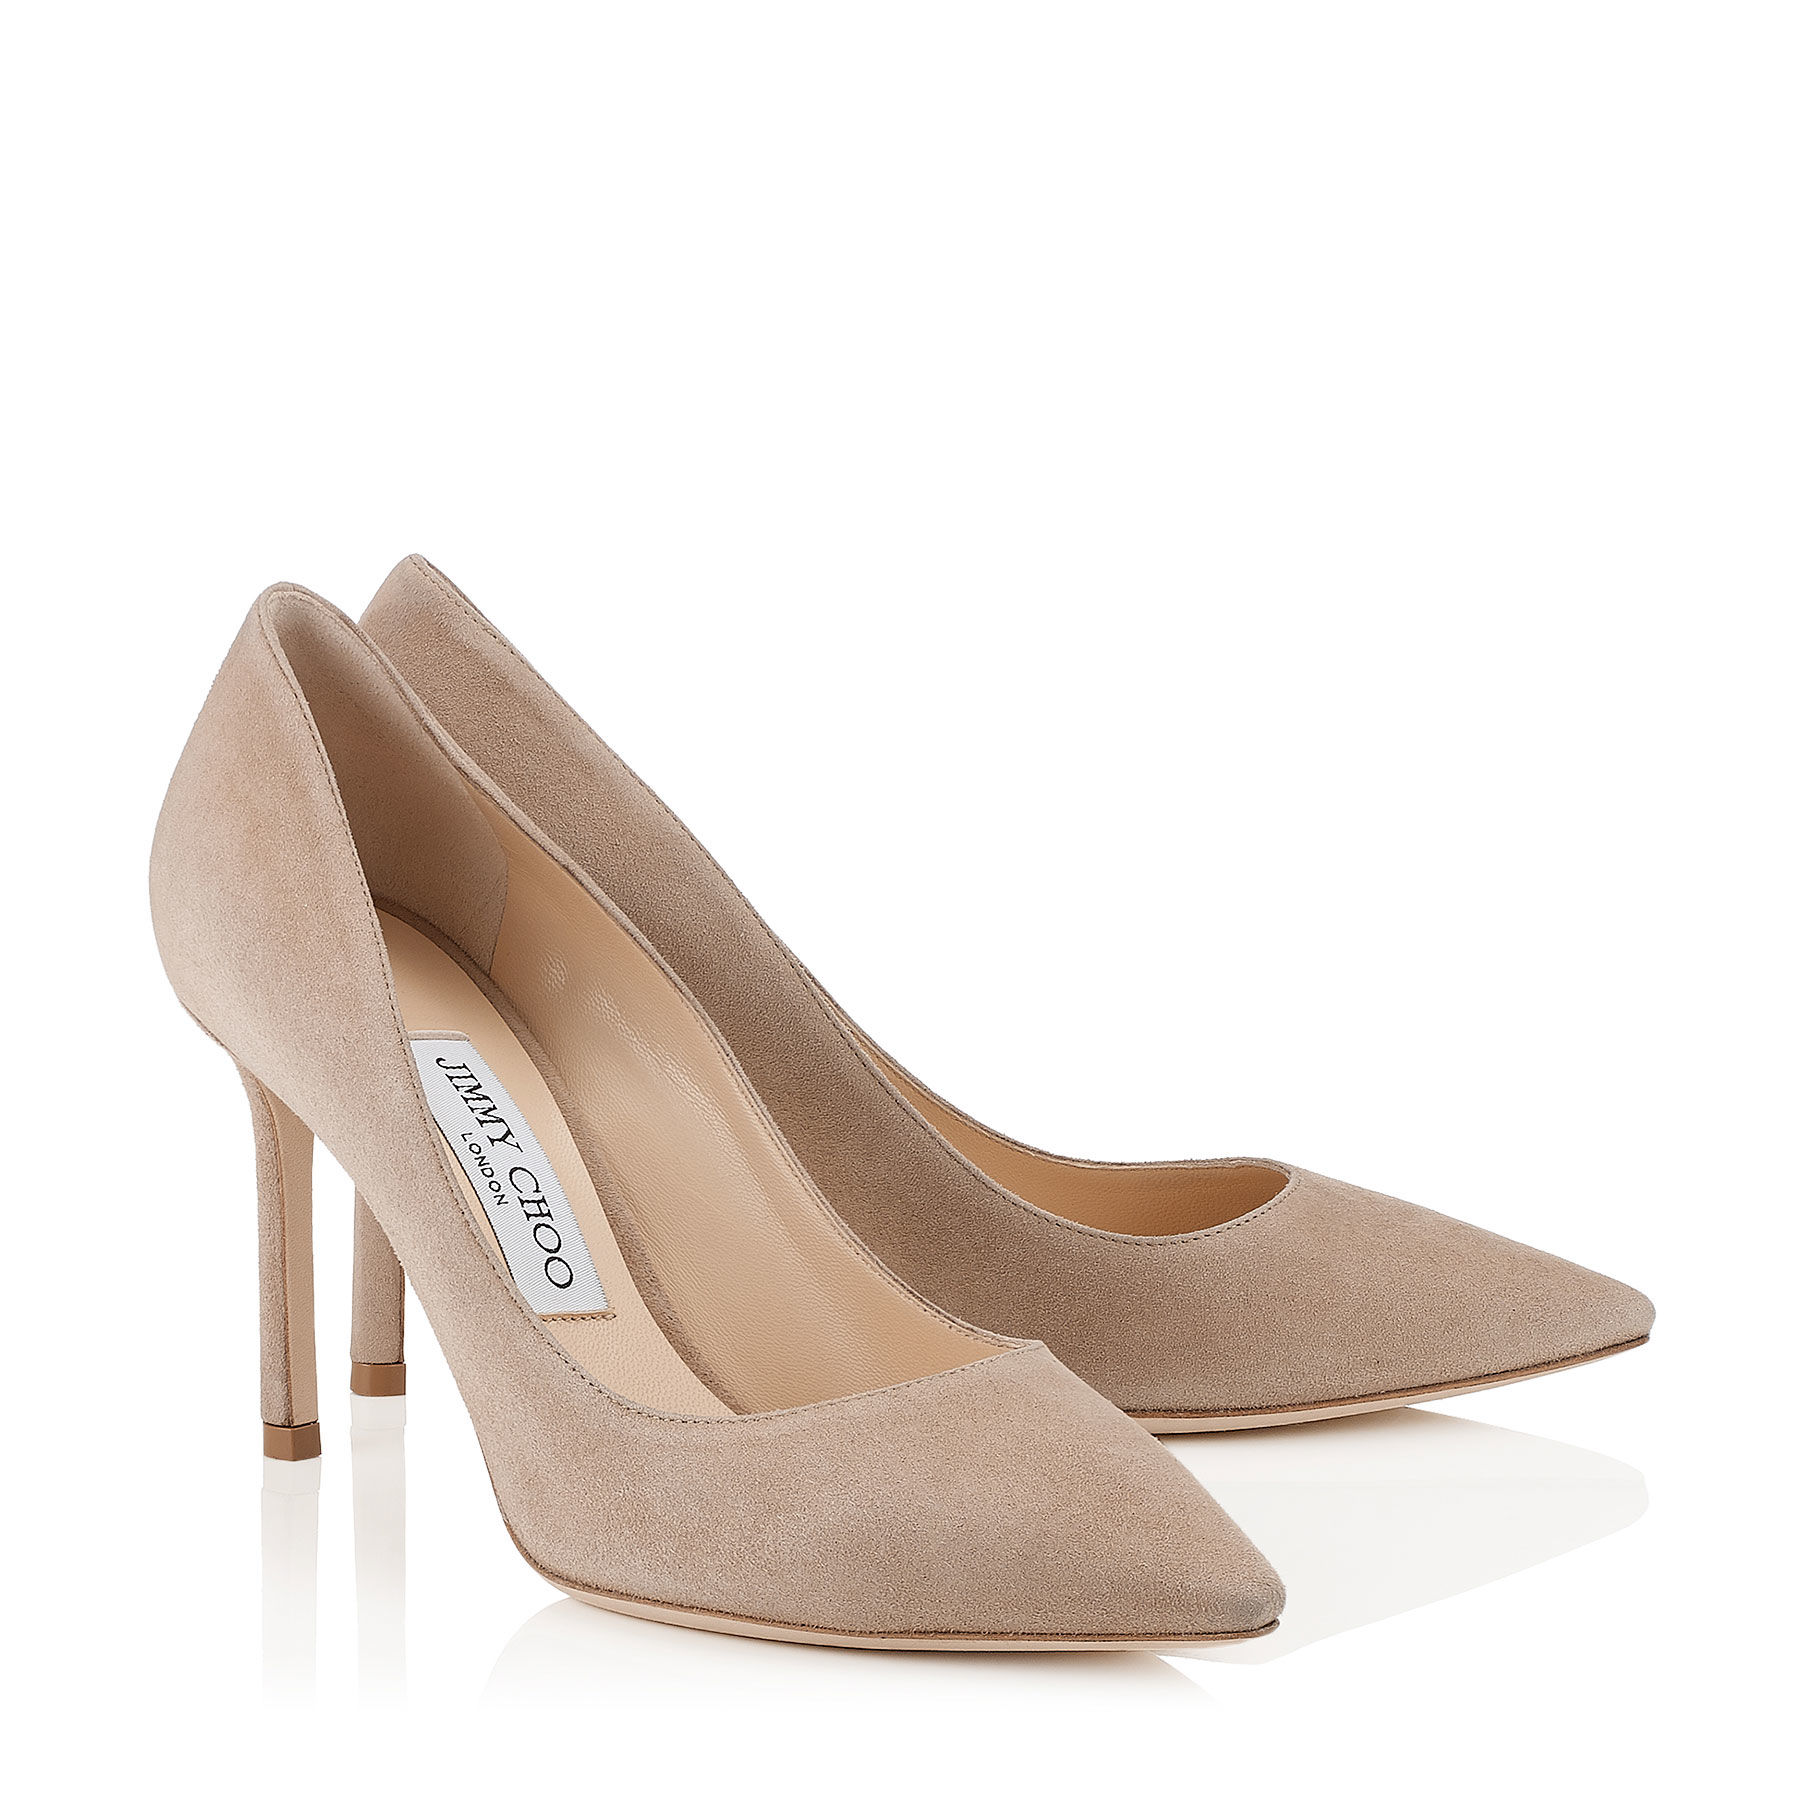 Jimmy Choo - ''Romy 85'' nude suede pointy toe pumps.jpg